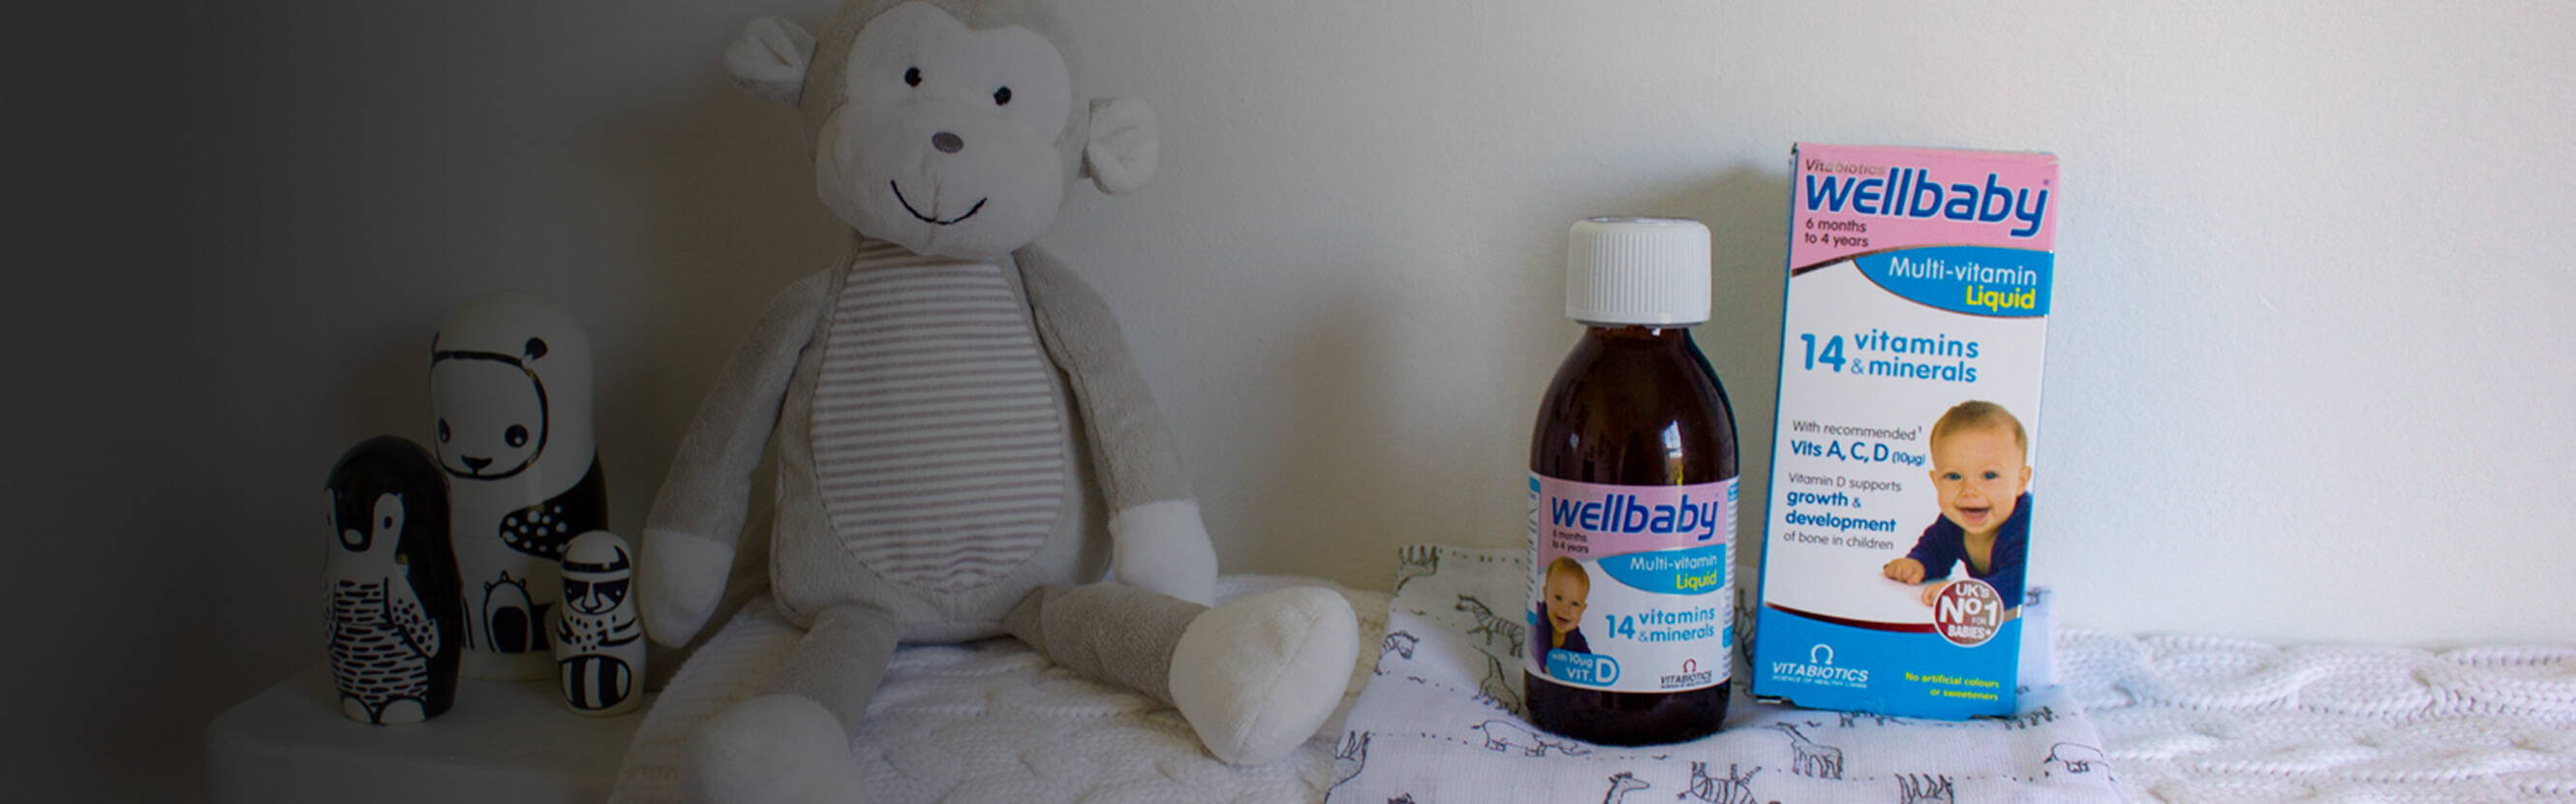 From sleeping to snuggles and sharing smiles, your baby has a lot to get done – and the right nutrition plays an important role in development. Wellbaby Multi-vitamin Liquid provides 14 vitamins and minerals, including those recommended by the Department of Health, in a gentle, delicious liquid.